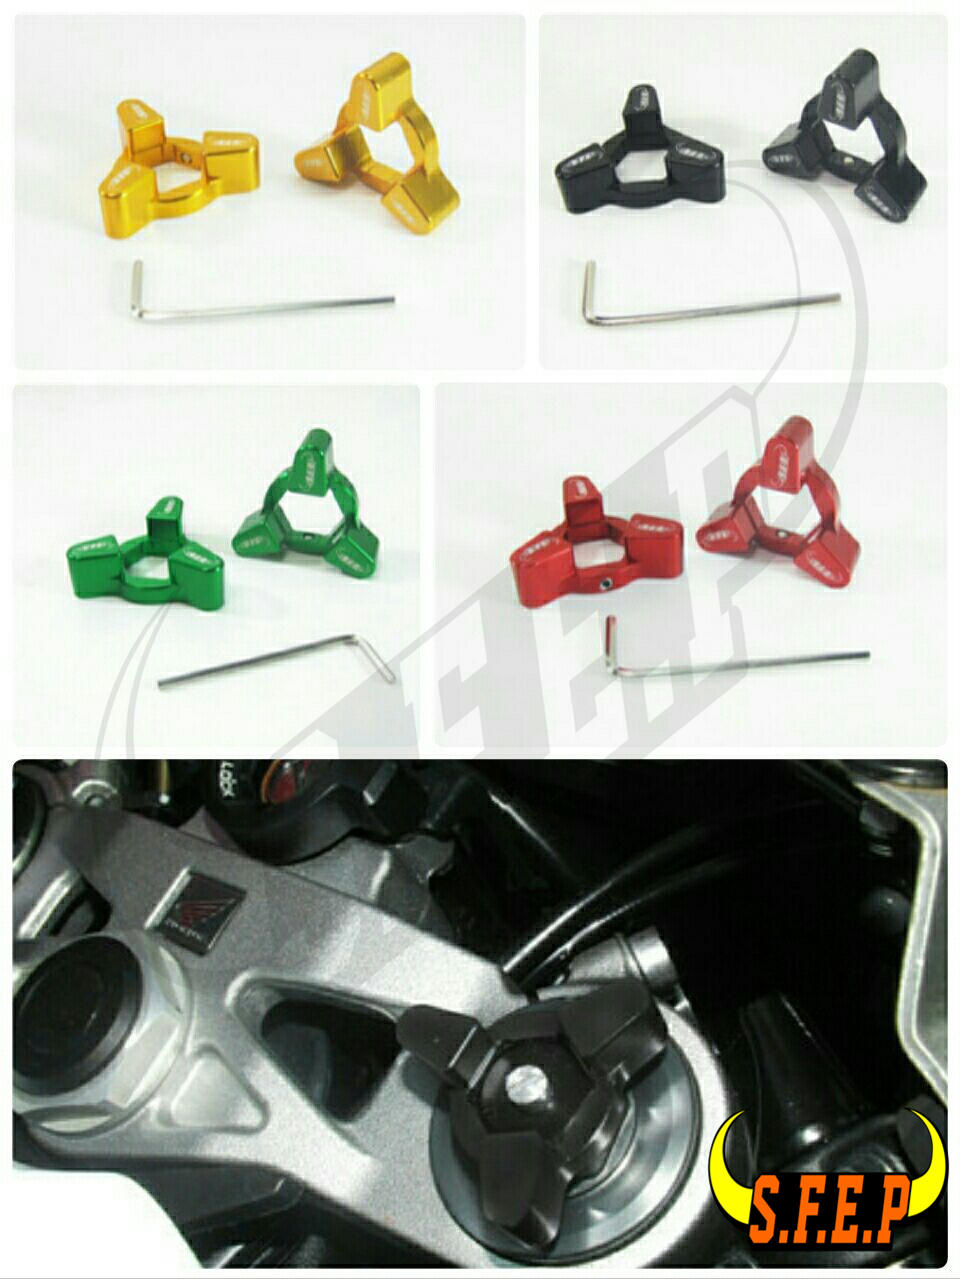 Motorcycle CNC Fork Preload Adjusters For Triumph Speed Triple 05-10/ Bonneville SE/T100 06-10/ SpeedMaster 07-09/ Tiger 07-10